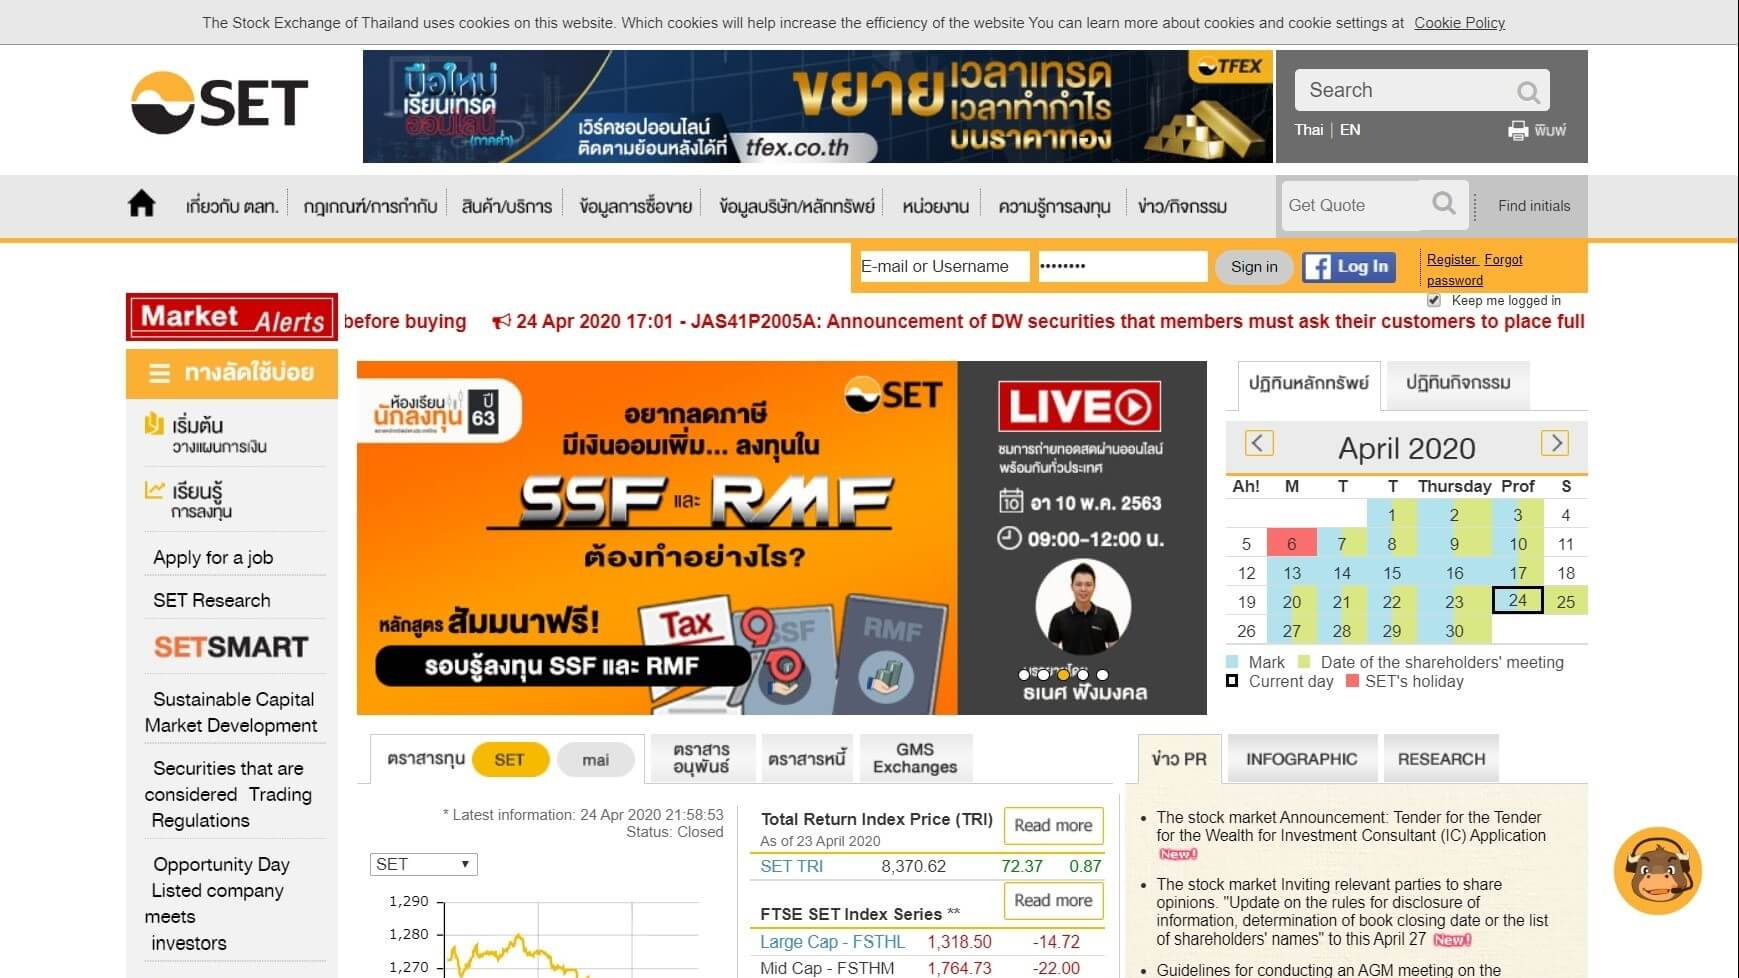 Thailand newspapers 34 stock exchange of Thailand website